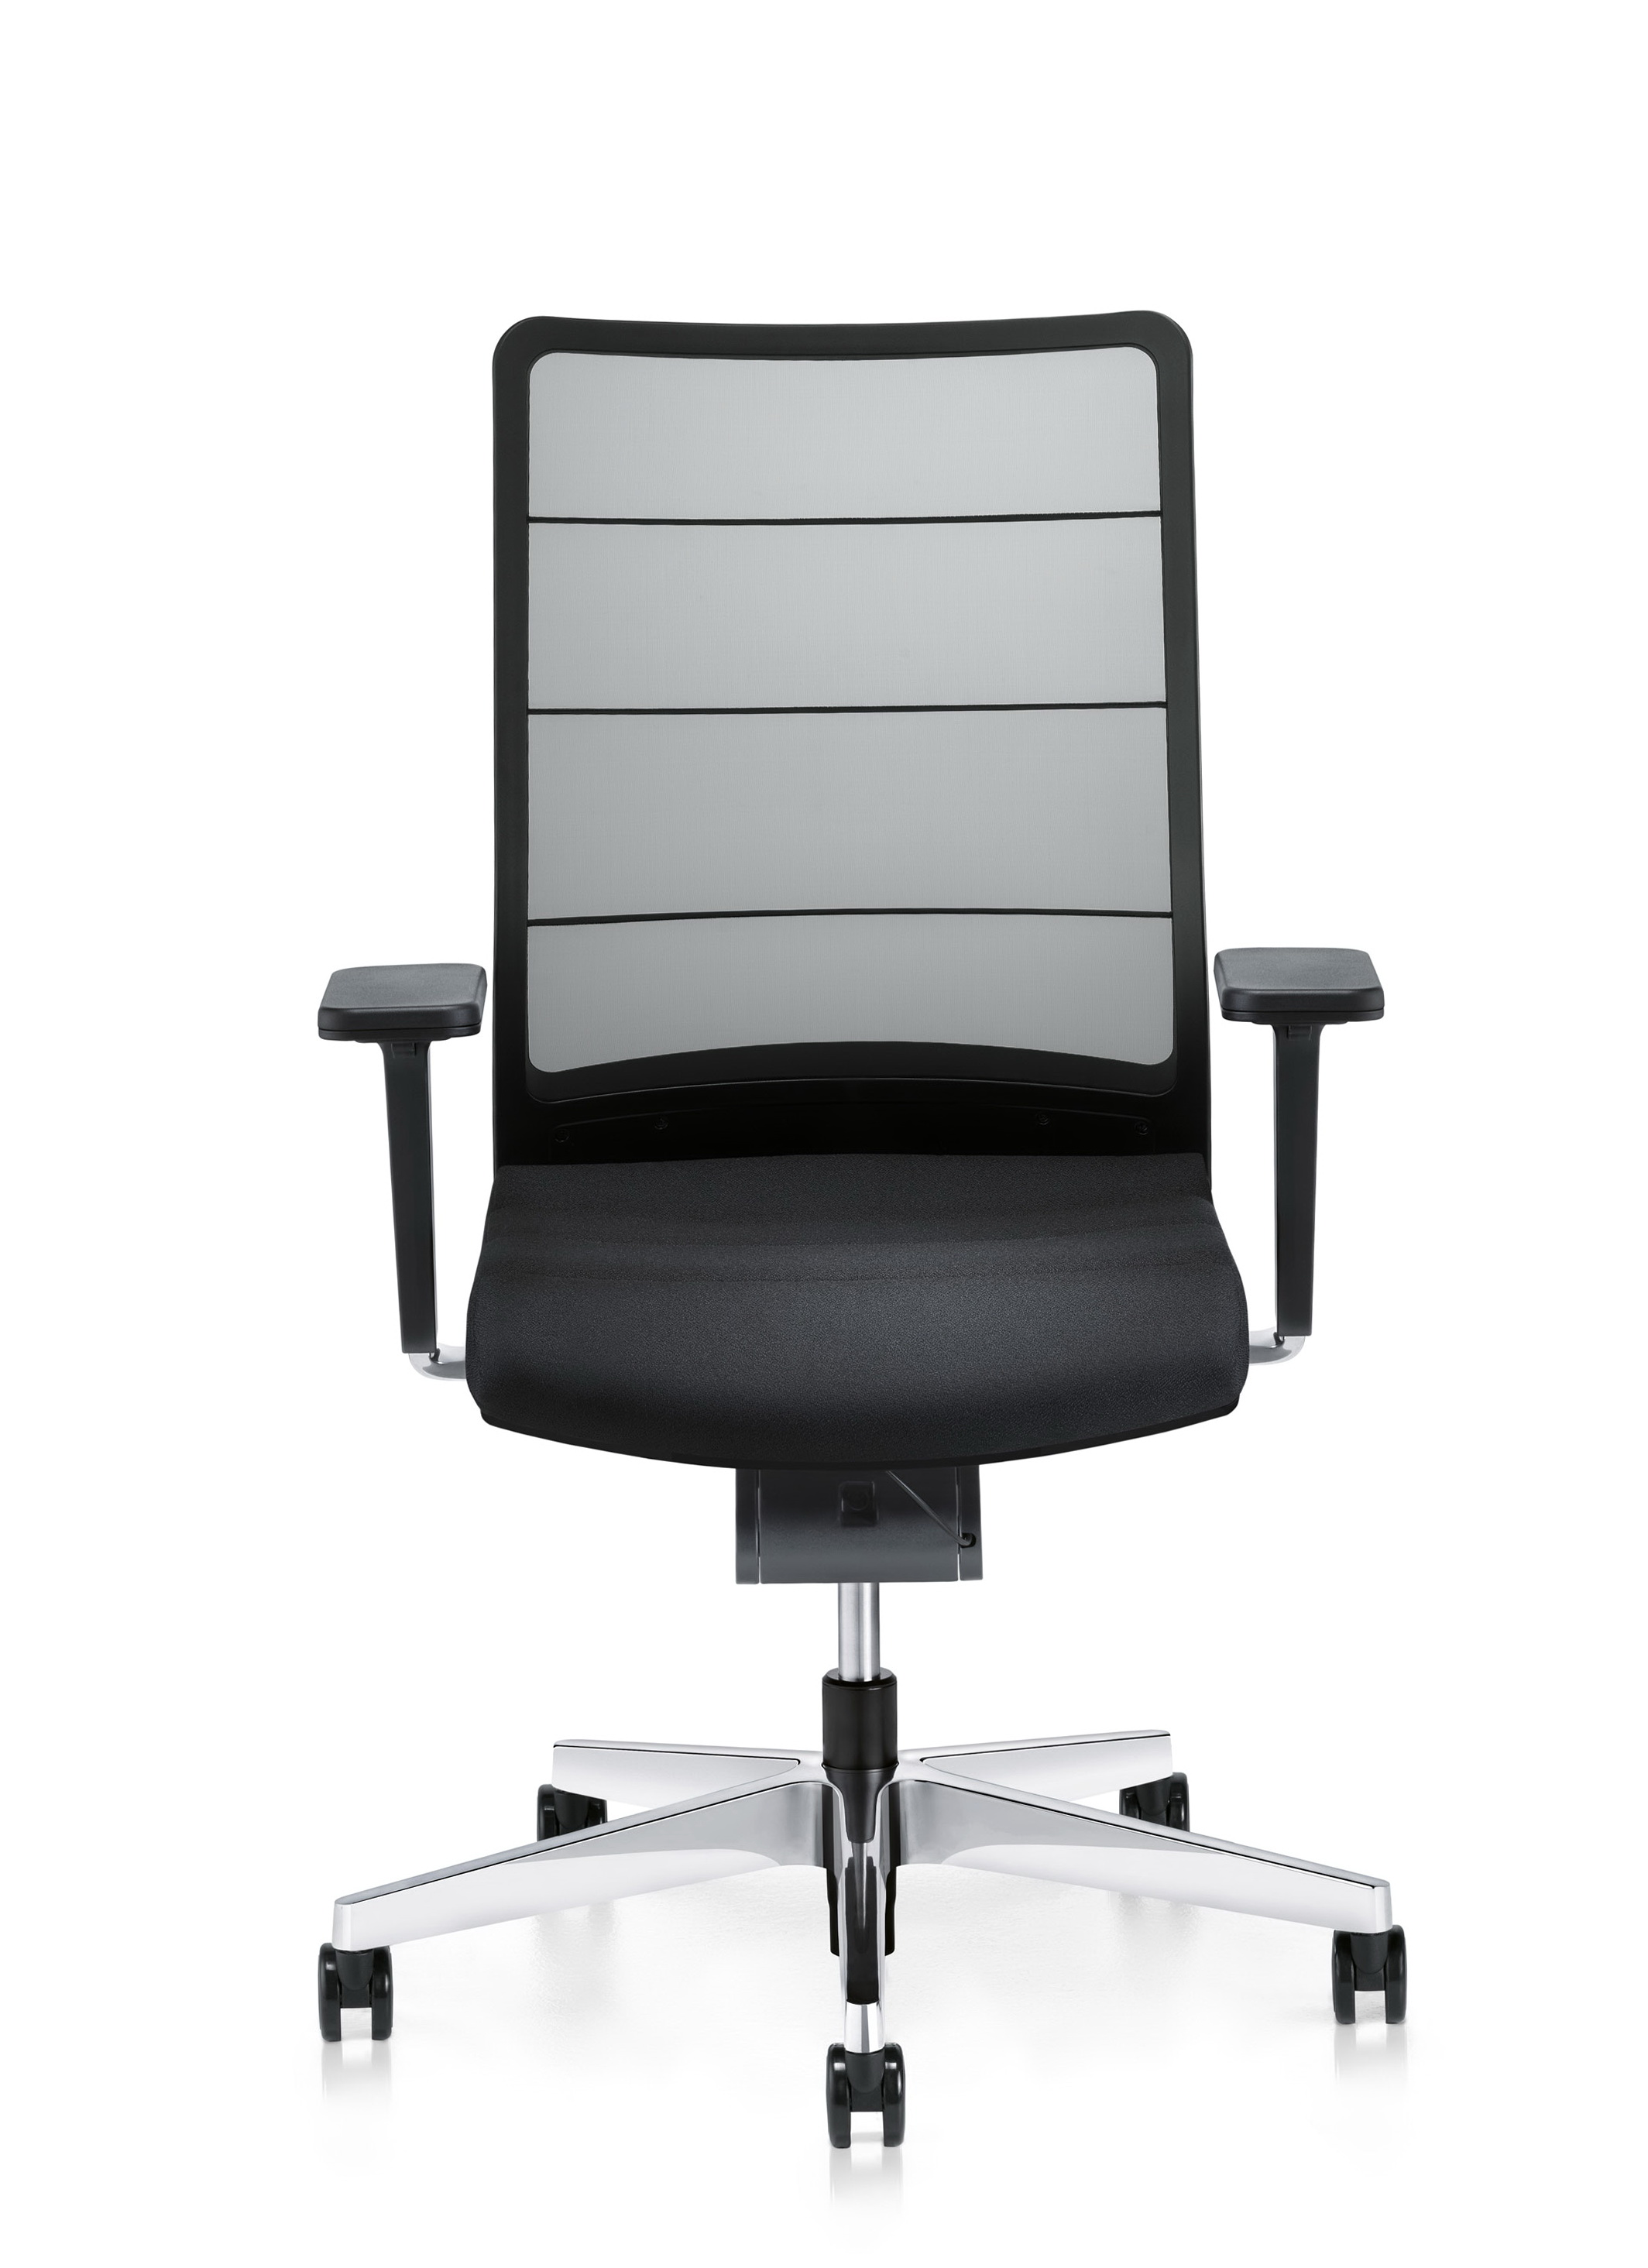 Best Desk Chair For Long Hours